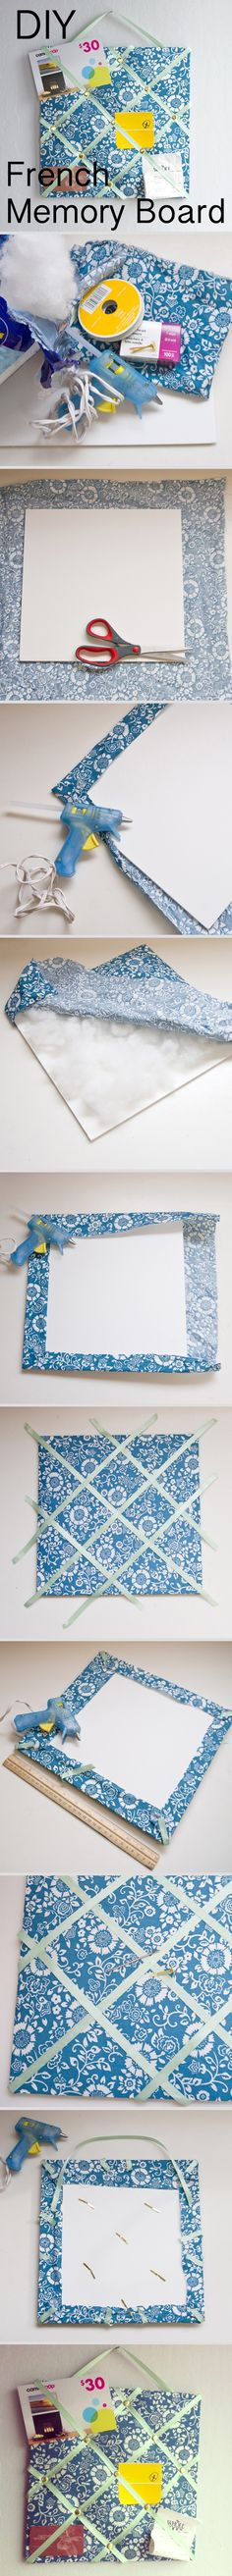 """""""How to make a memory board.""""  Wow, great timing! I was just trying to figure out how to make a pincushion using a ribbon I love to help tuft it! A little more foam and I have a winner!"""